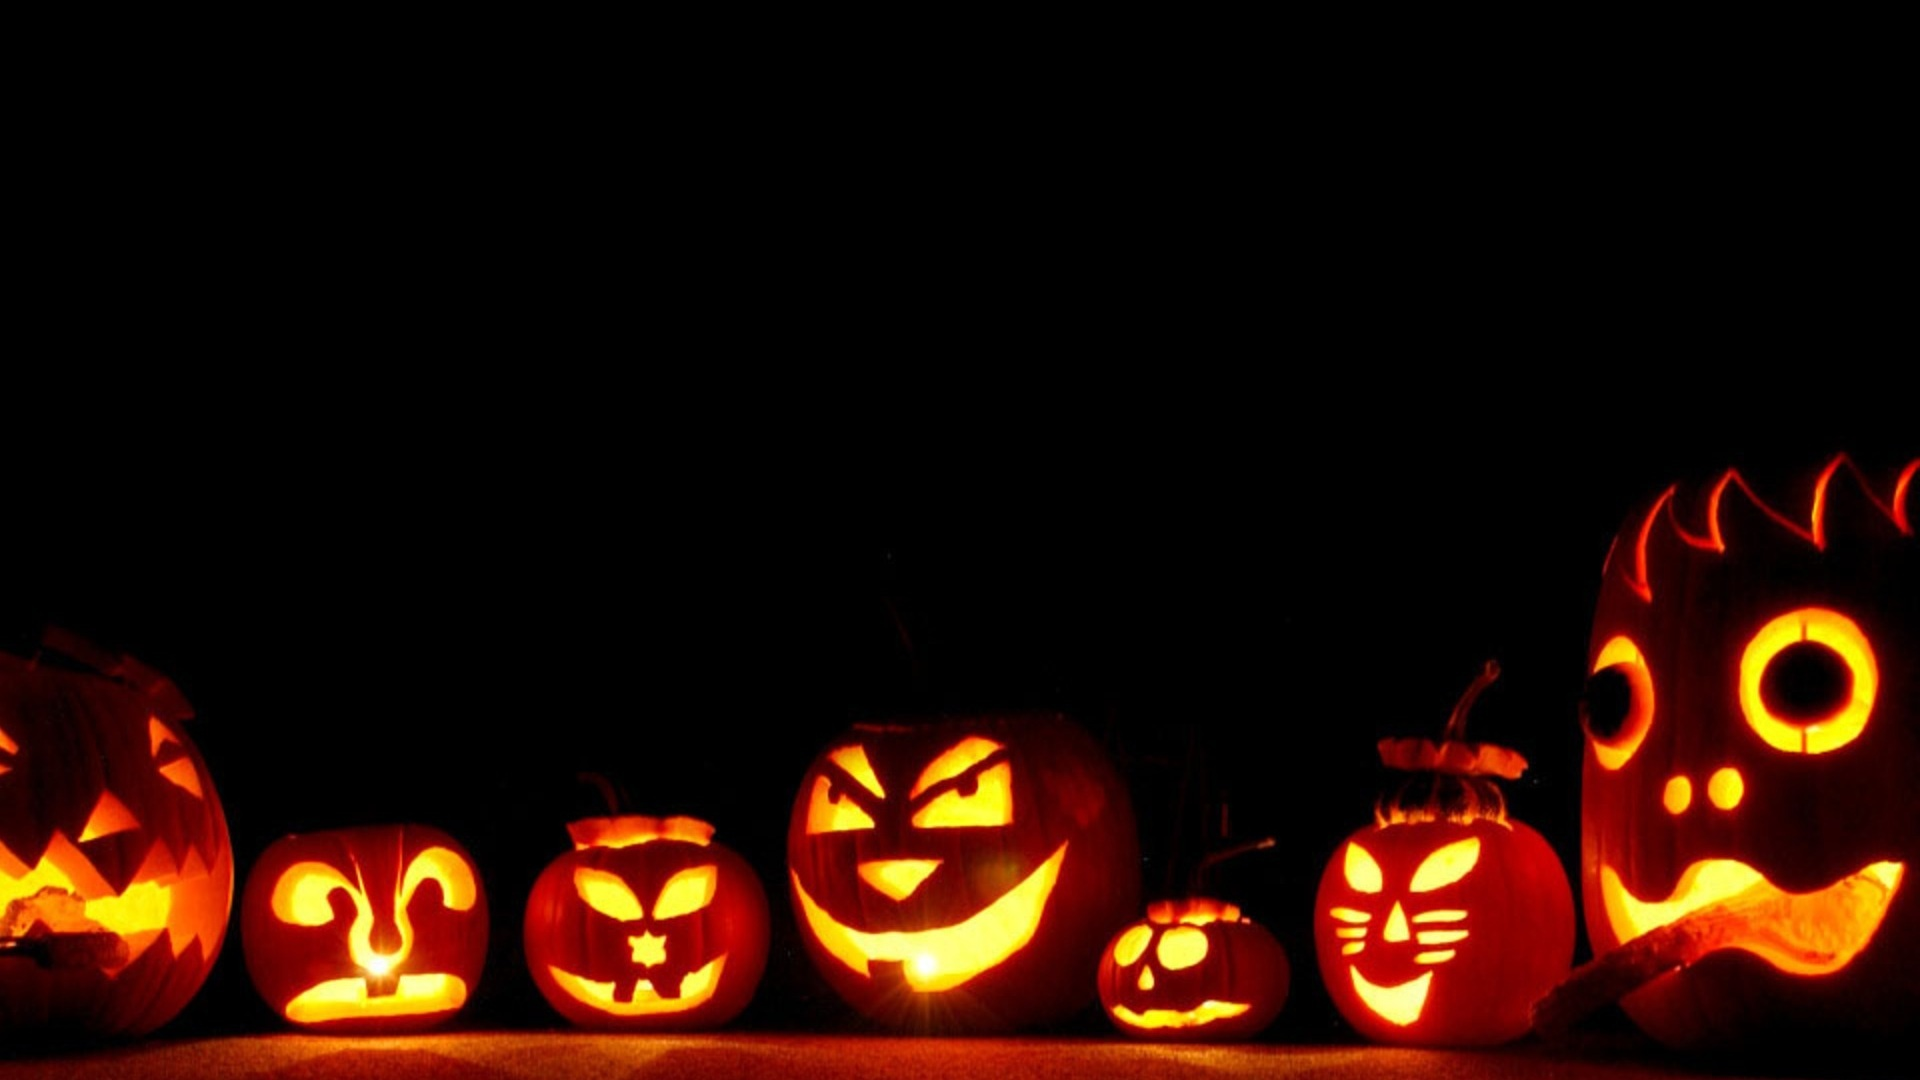 Halloween Computer Wallpaper Backgrounds Mobile Compatible 1920x1080